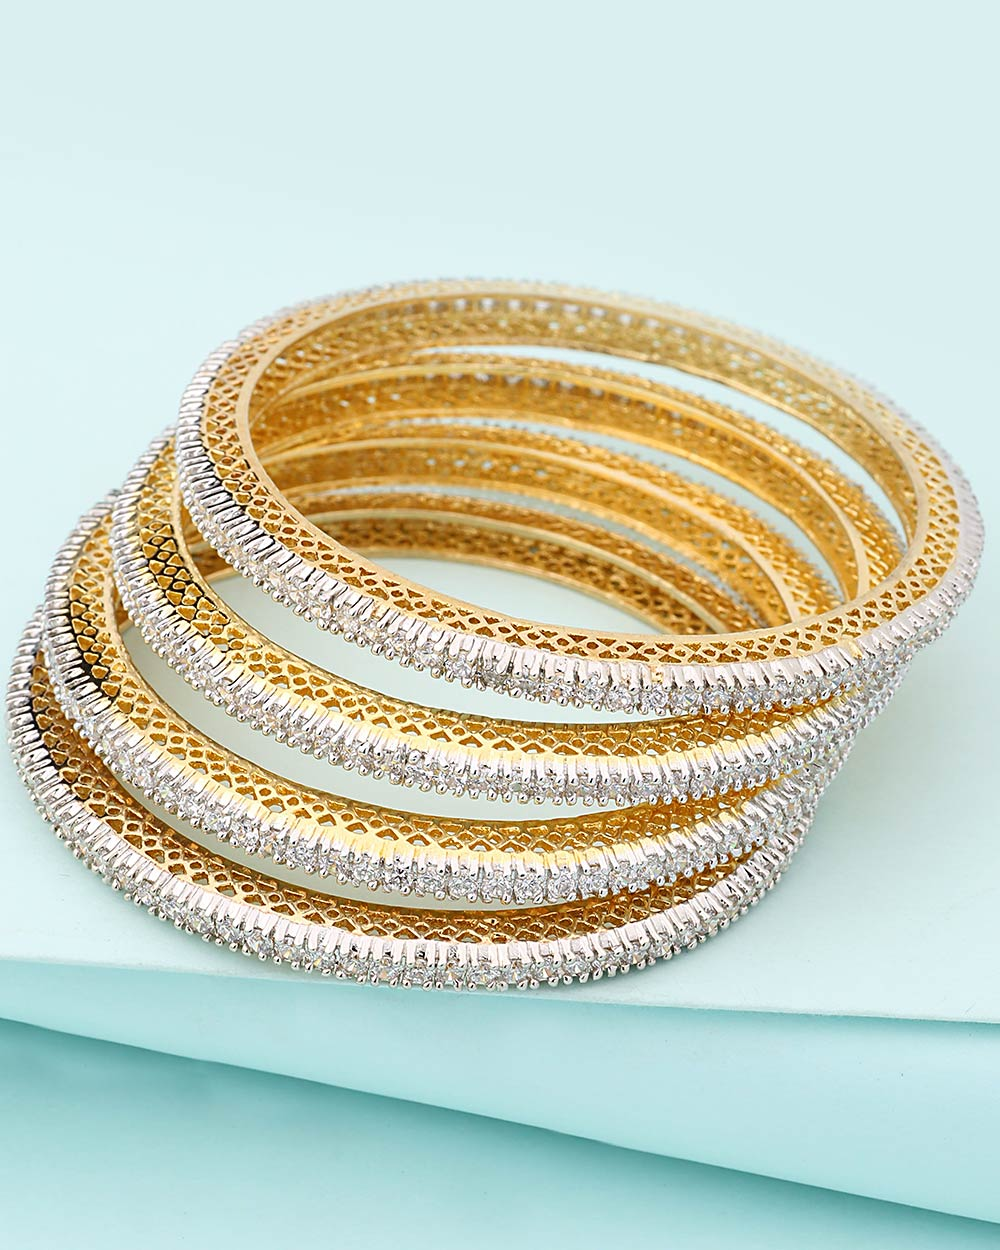 Beautiful Studded Bangles with Nickel Plating | Buy Designer ...